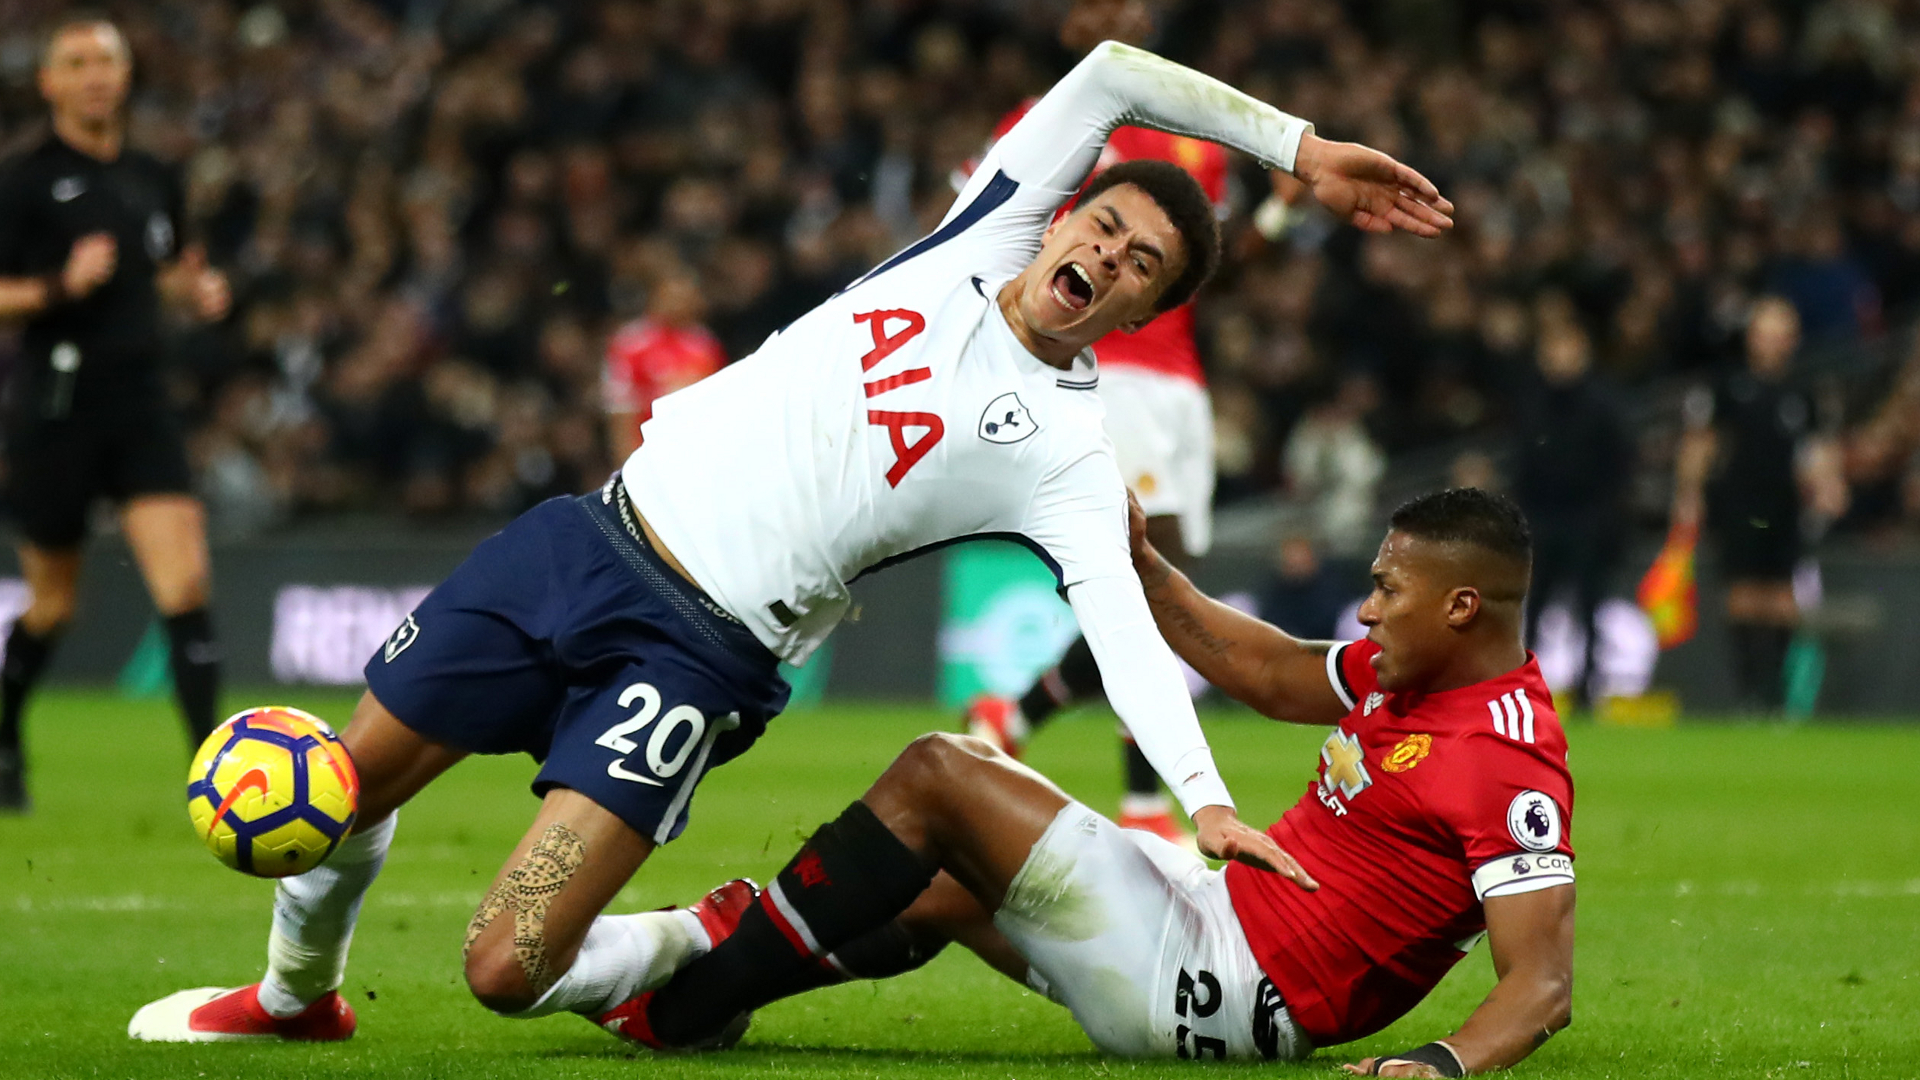 Dele Alli 2019 Wallpapers